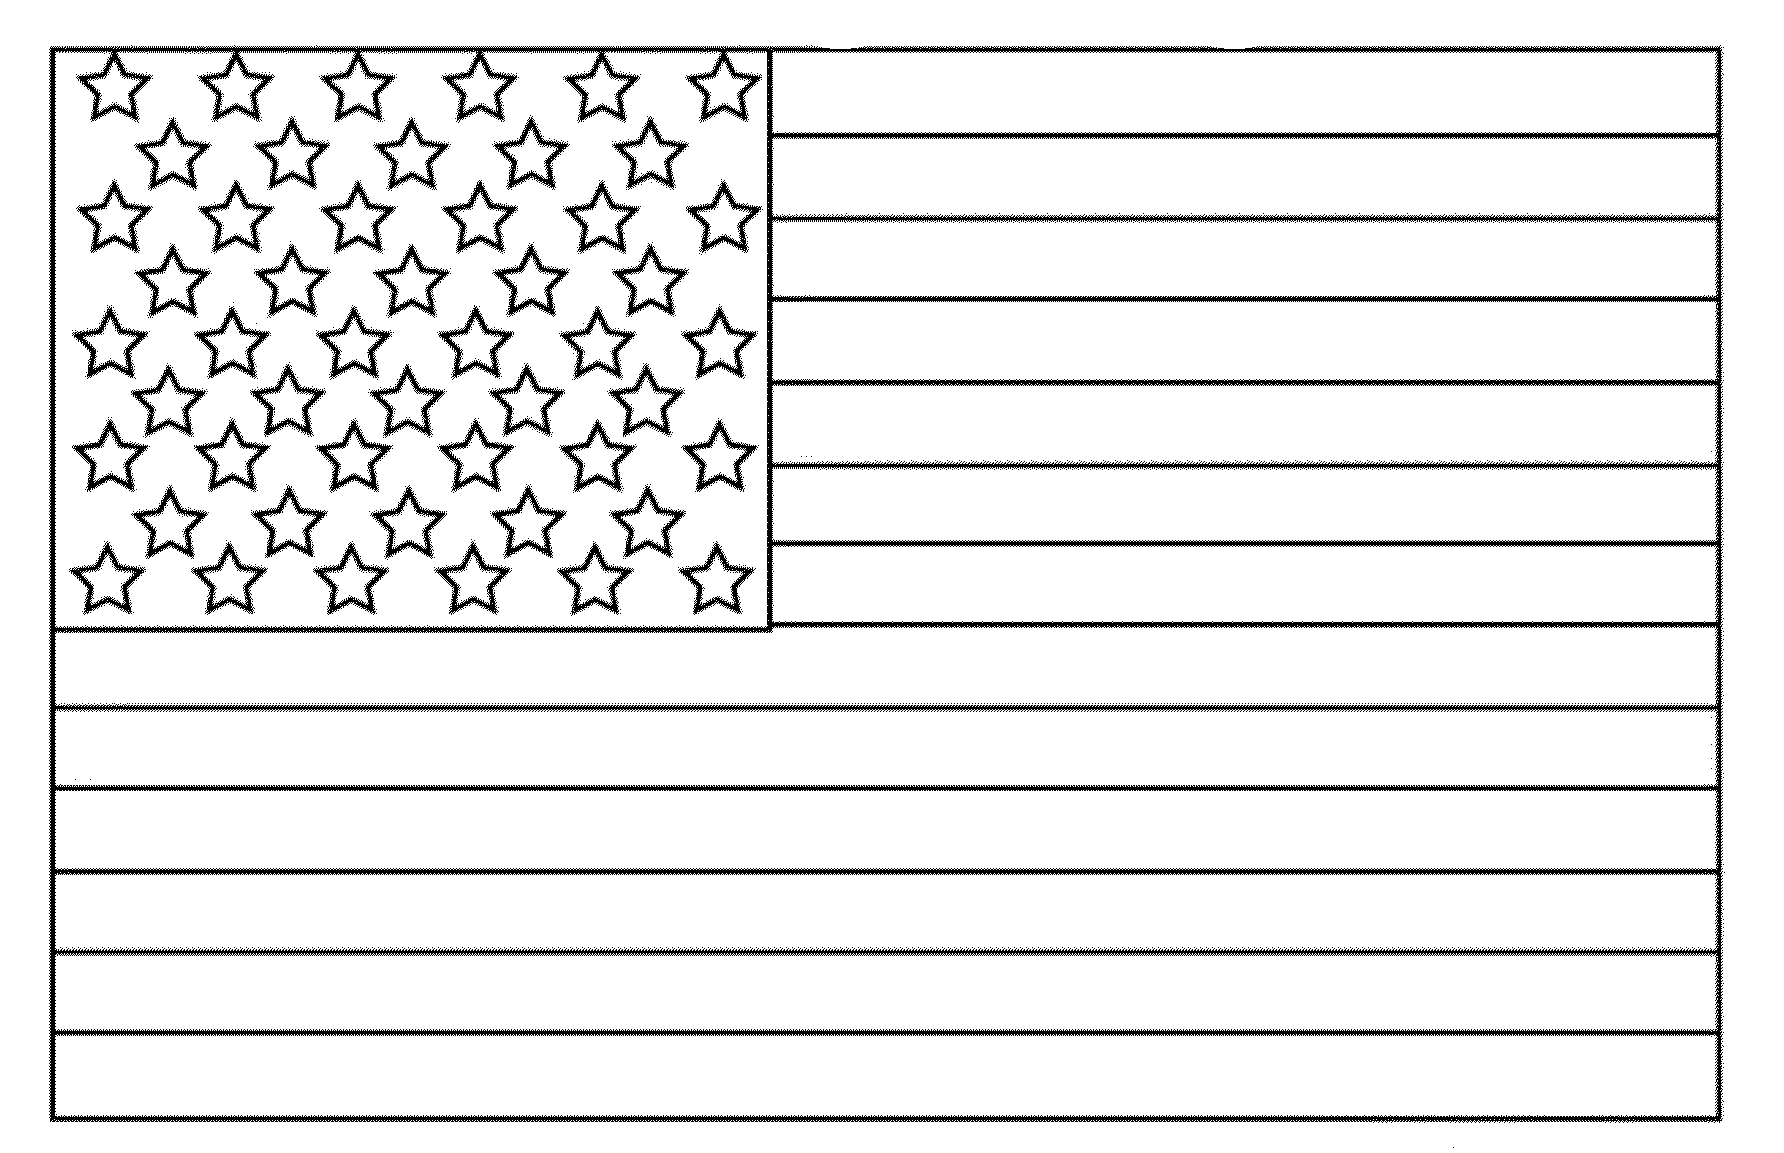 american flag coloring pages american flag coloring pages best coloring pages for kids pages coloring american flag